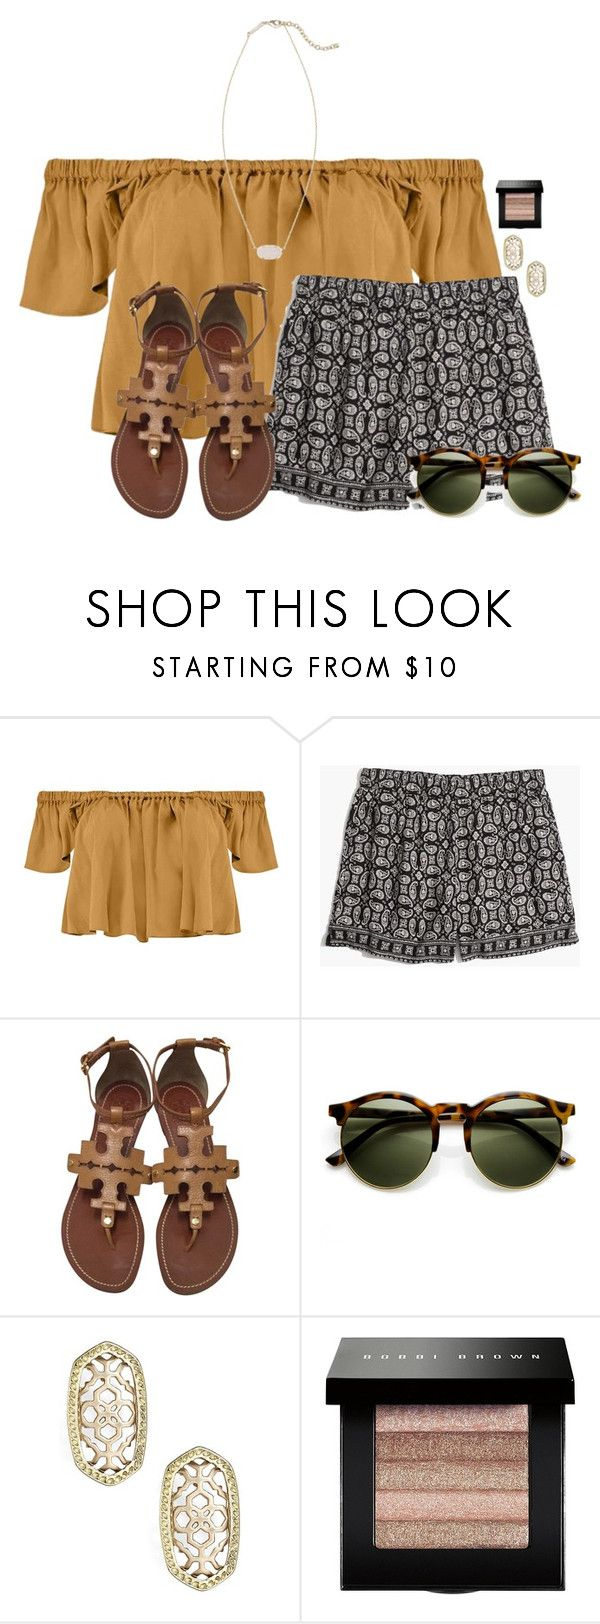 """~choose happy~"" by flroasburn ❤ liked on Polyvore featuring Boohoo, Madewell, Tory Burch, Kendra Scott and Bobbi Brown Cosmetics"